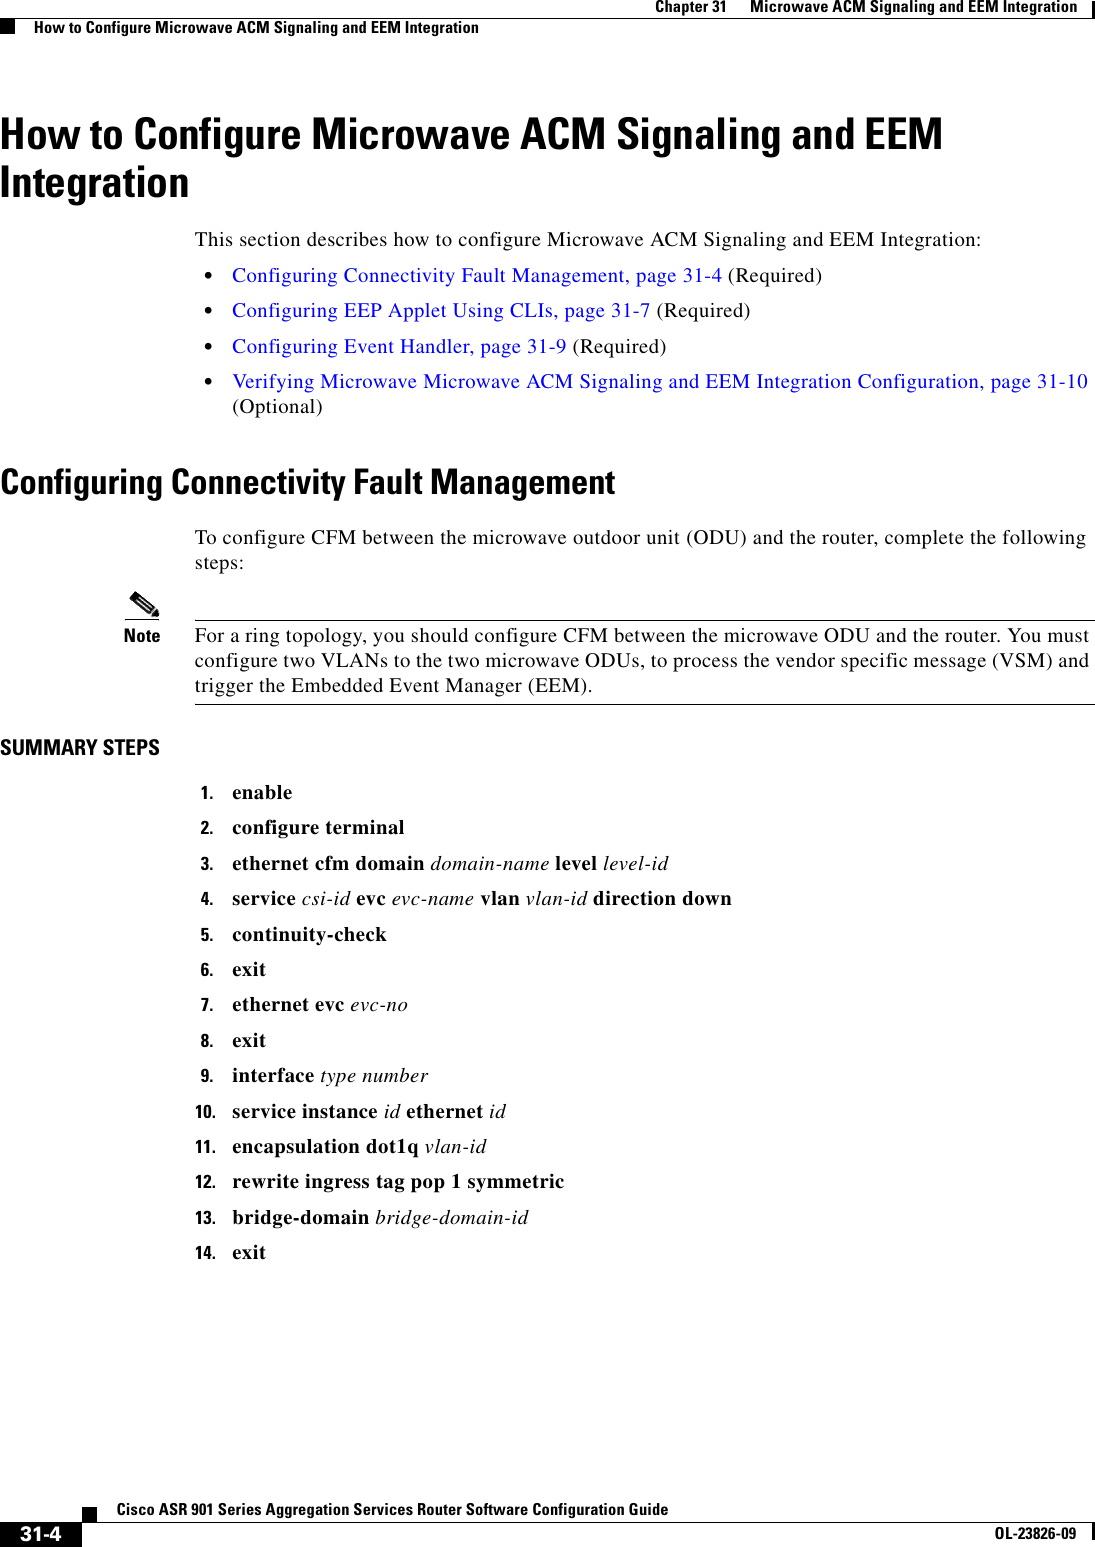 Cisco Systems A9014Cfd Users Manual Config_guide